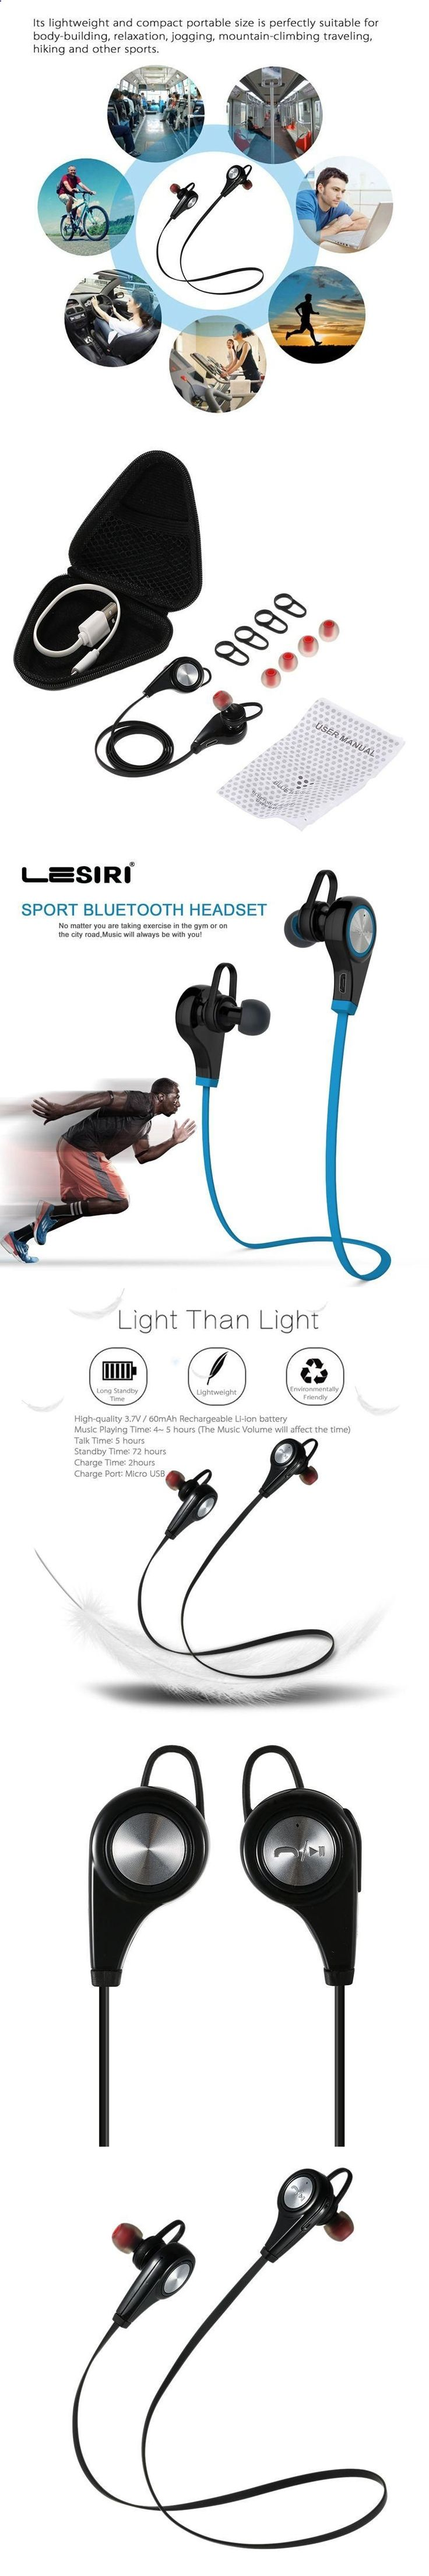 Sports Headphones - Bluetooth Earphone Wireless Sports Headphones In ear Headset Running Music Stereo Earbuds Handsfree with Mic for Smartphones - If you usually go out to run, walk or any other sport in which you usually carry music to accompany or motivate you, we have selected 13 models of sports headphones that we consider among the best in the market for different aspects, from comfort to use to design, sound quality or value for money, so that you find variety and can adjust the ...